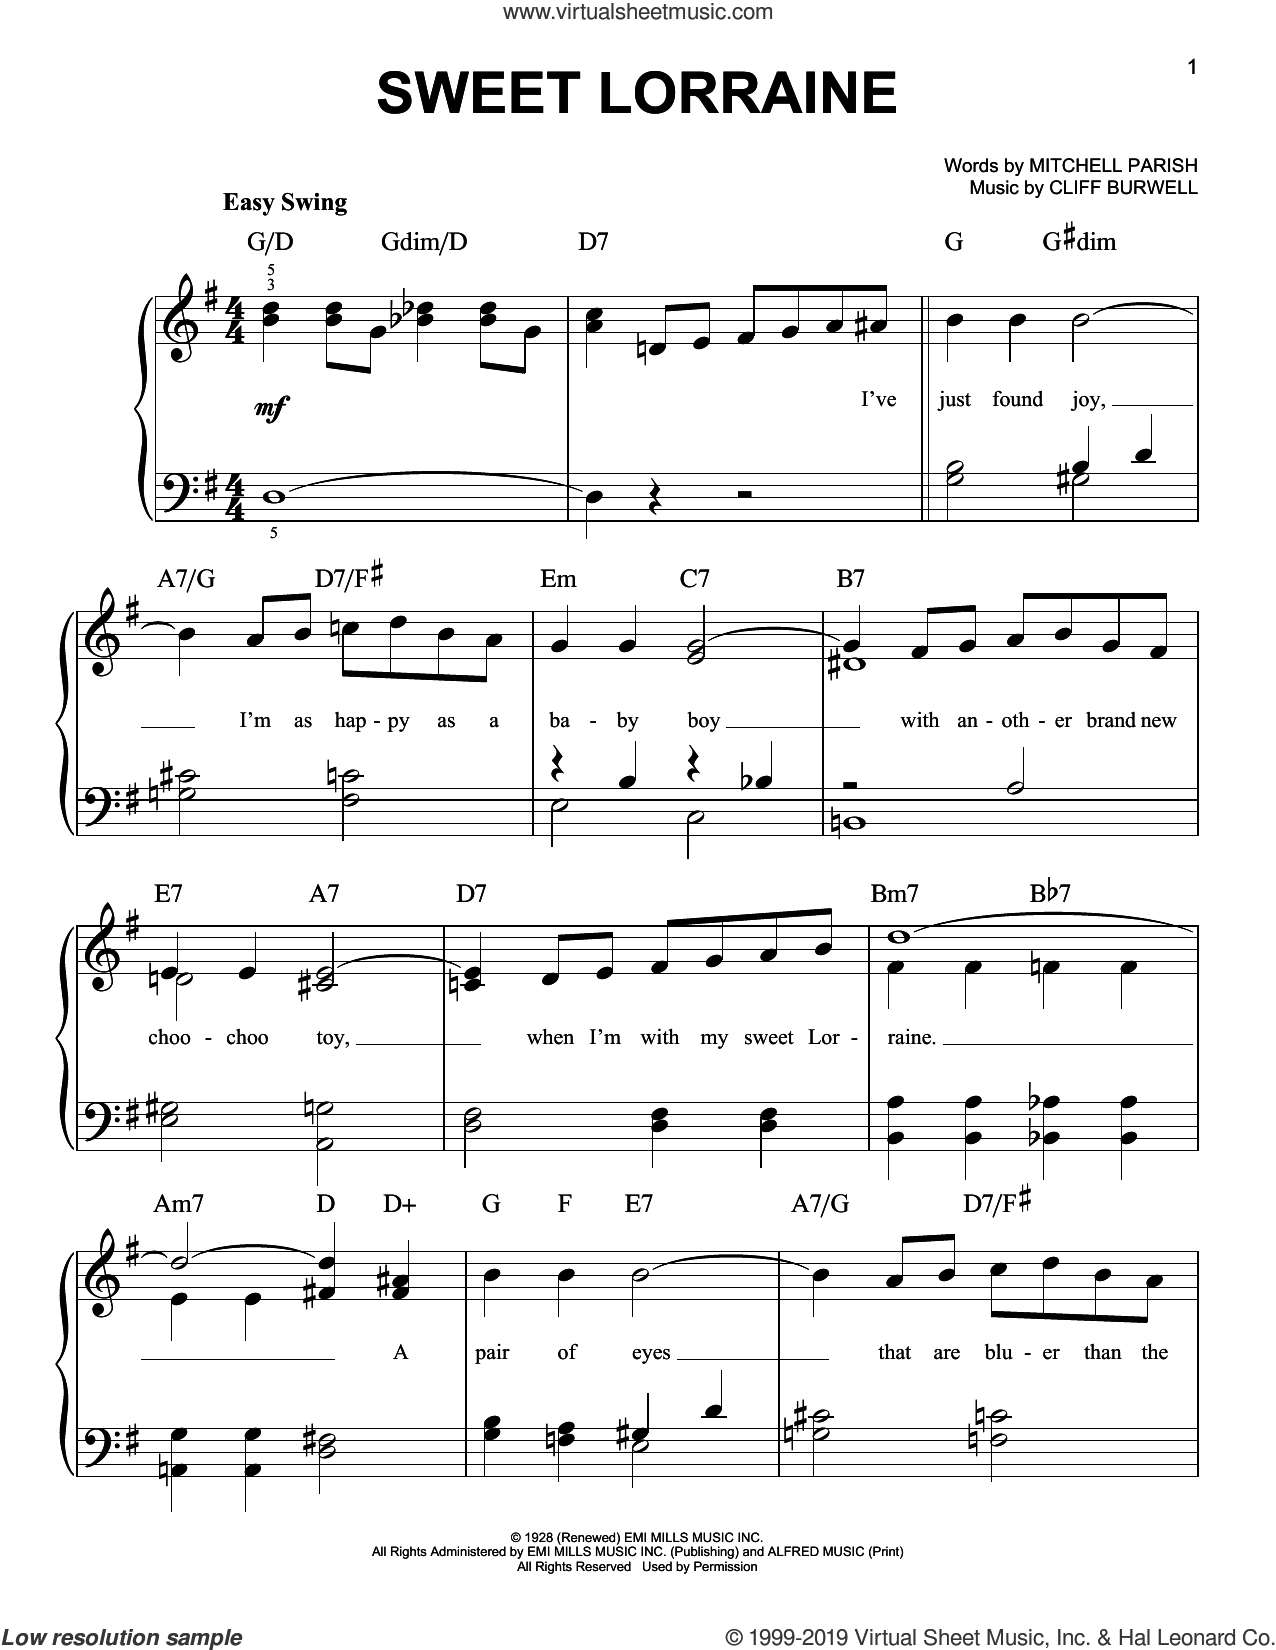 Sweet Lorraine sheet music for piano solo by Mitchell Parish and Cliff Burwell, easy skill level